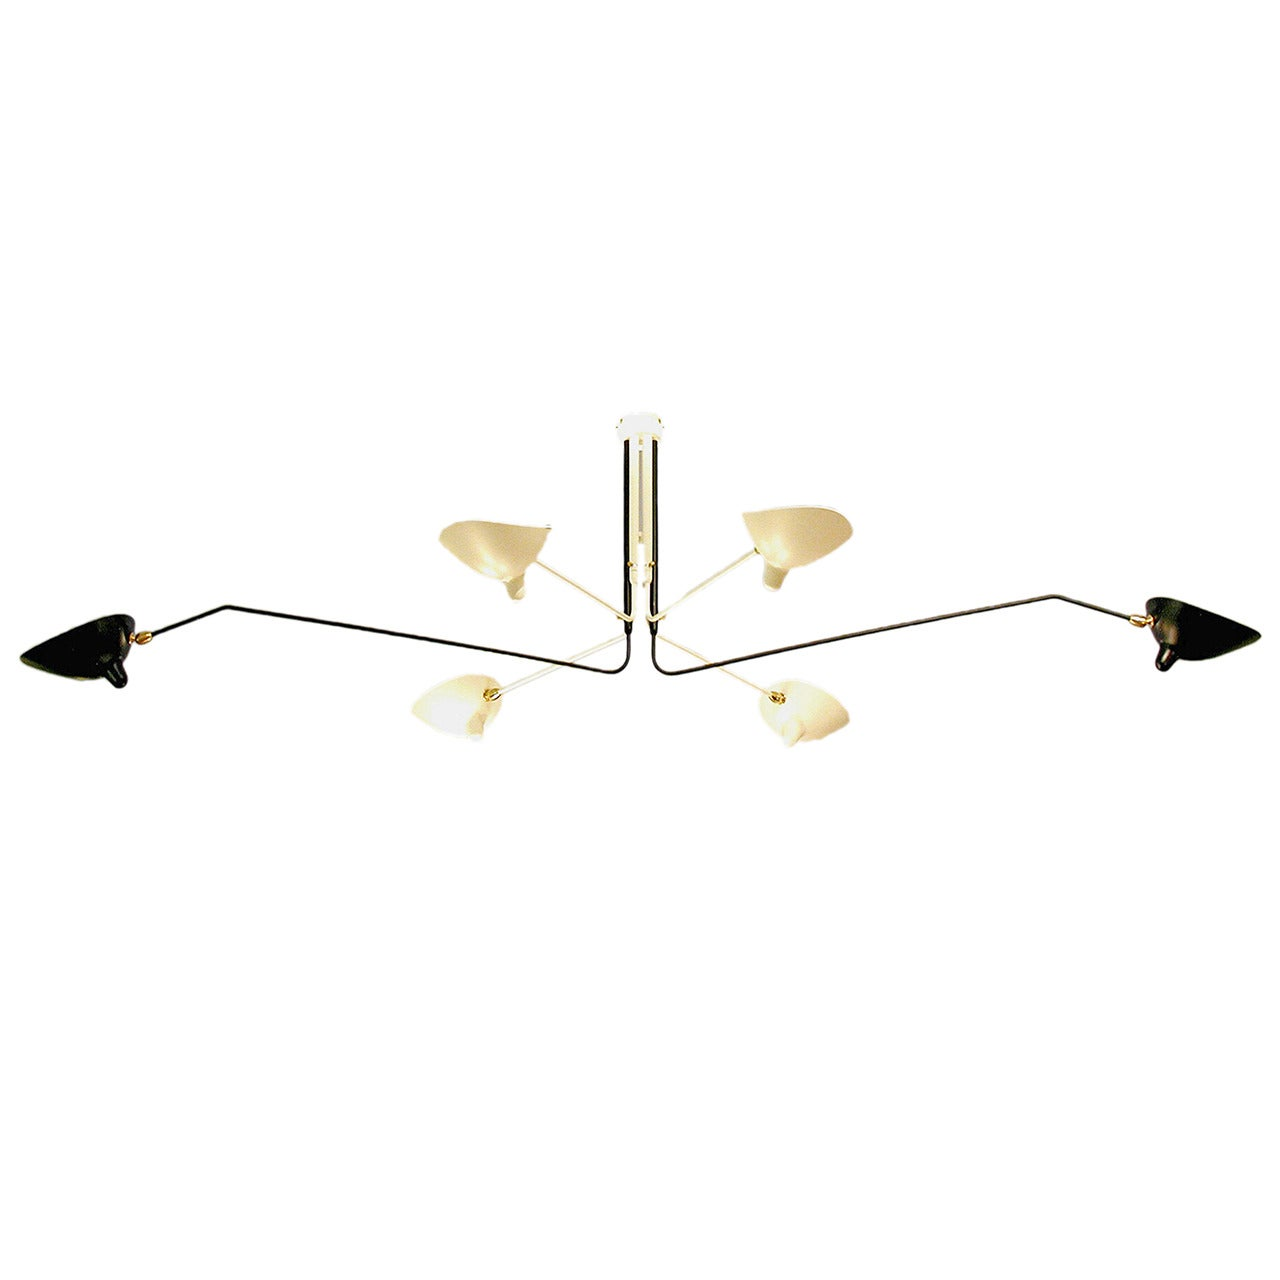 Ceiling Lamp with Six Rotating Arms in White, by Serge Mouille